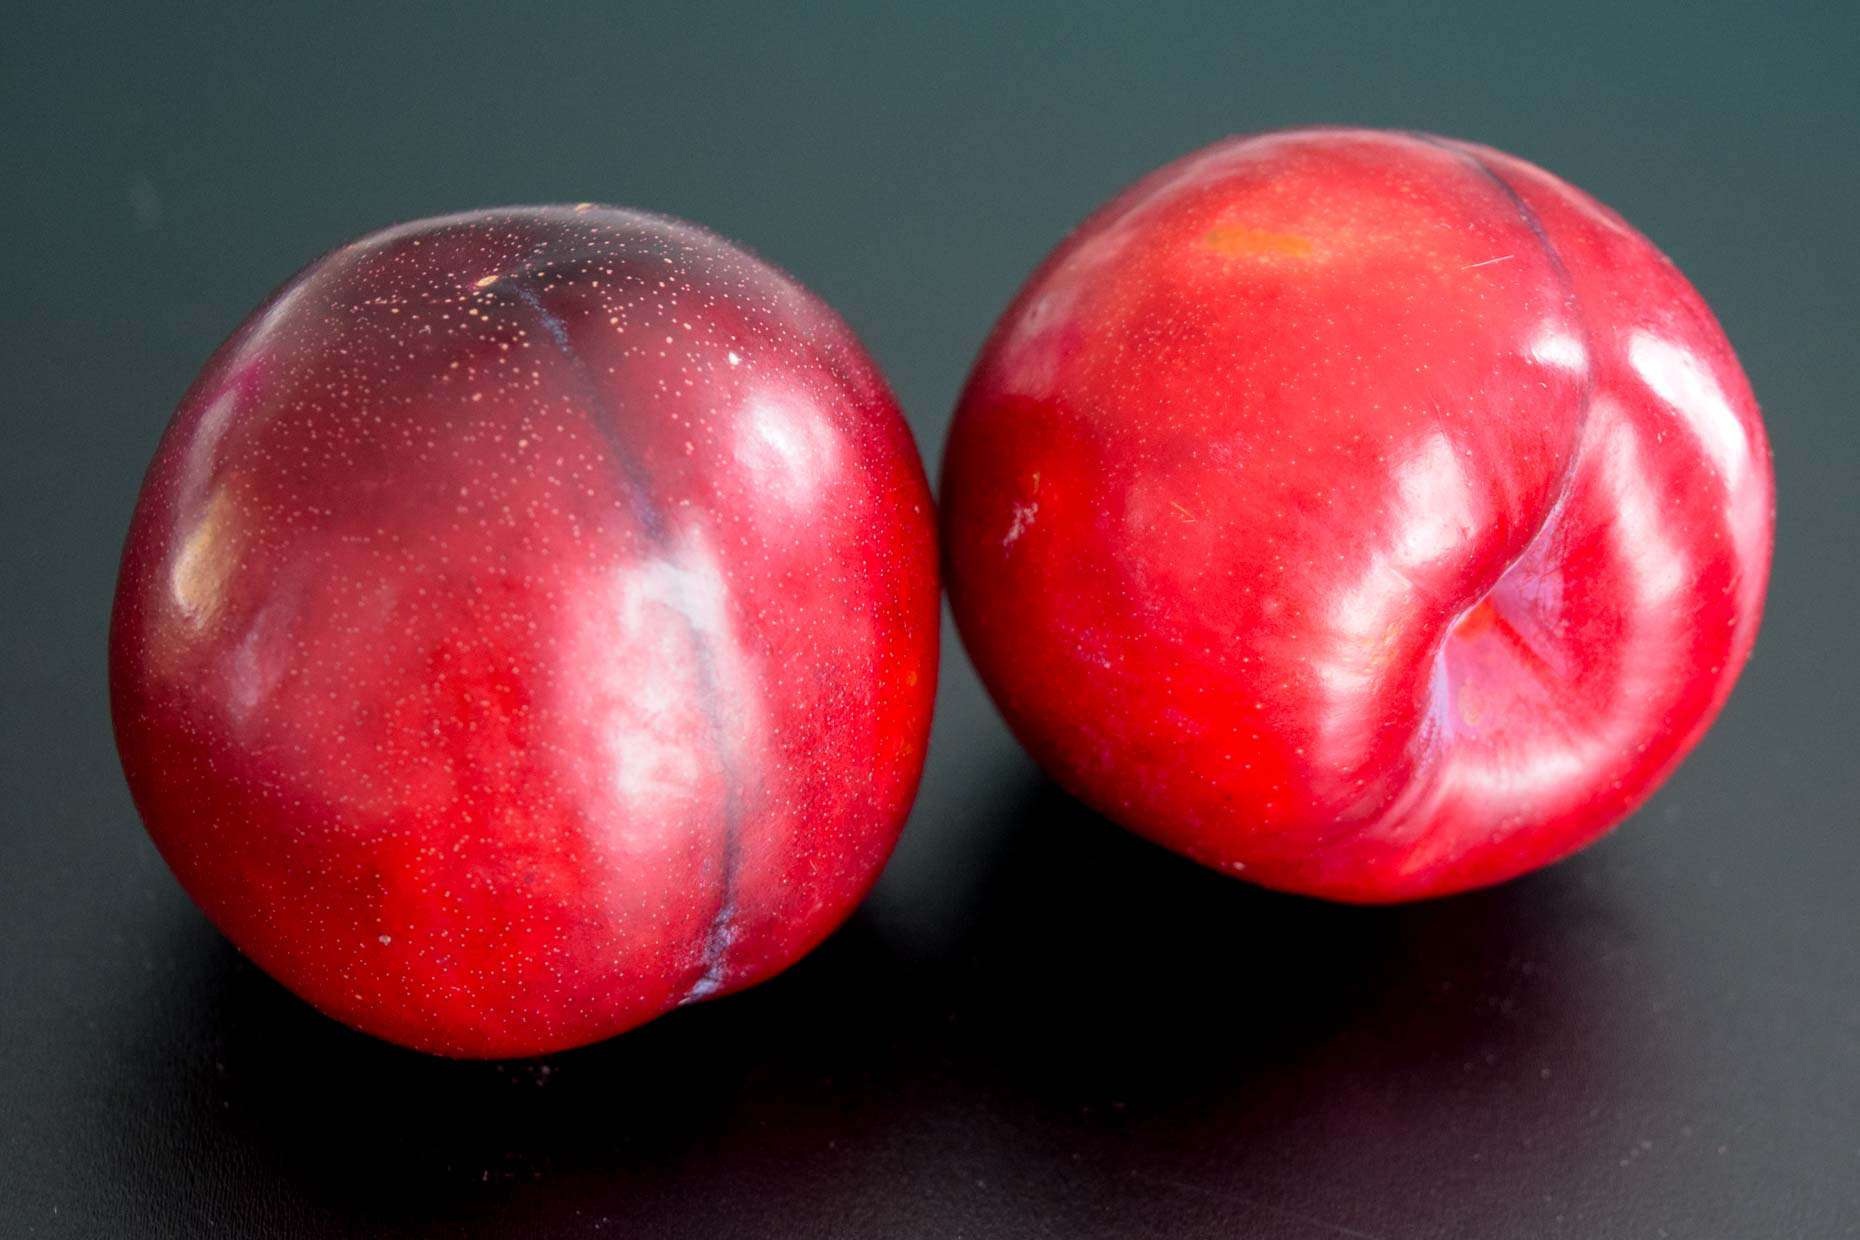 Plums on black background